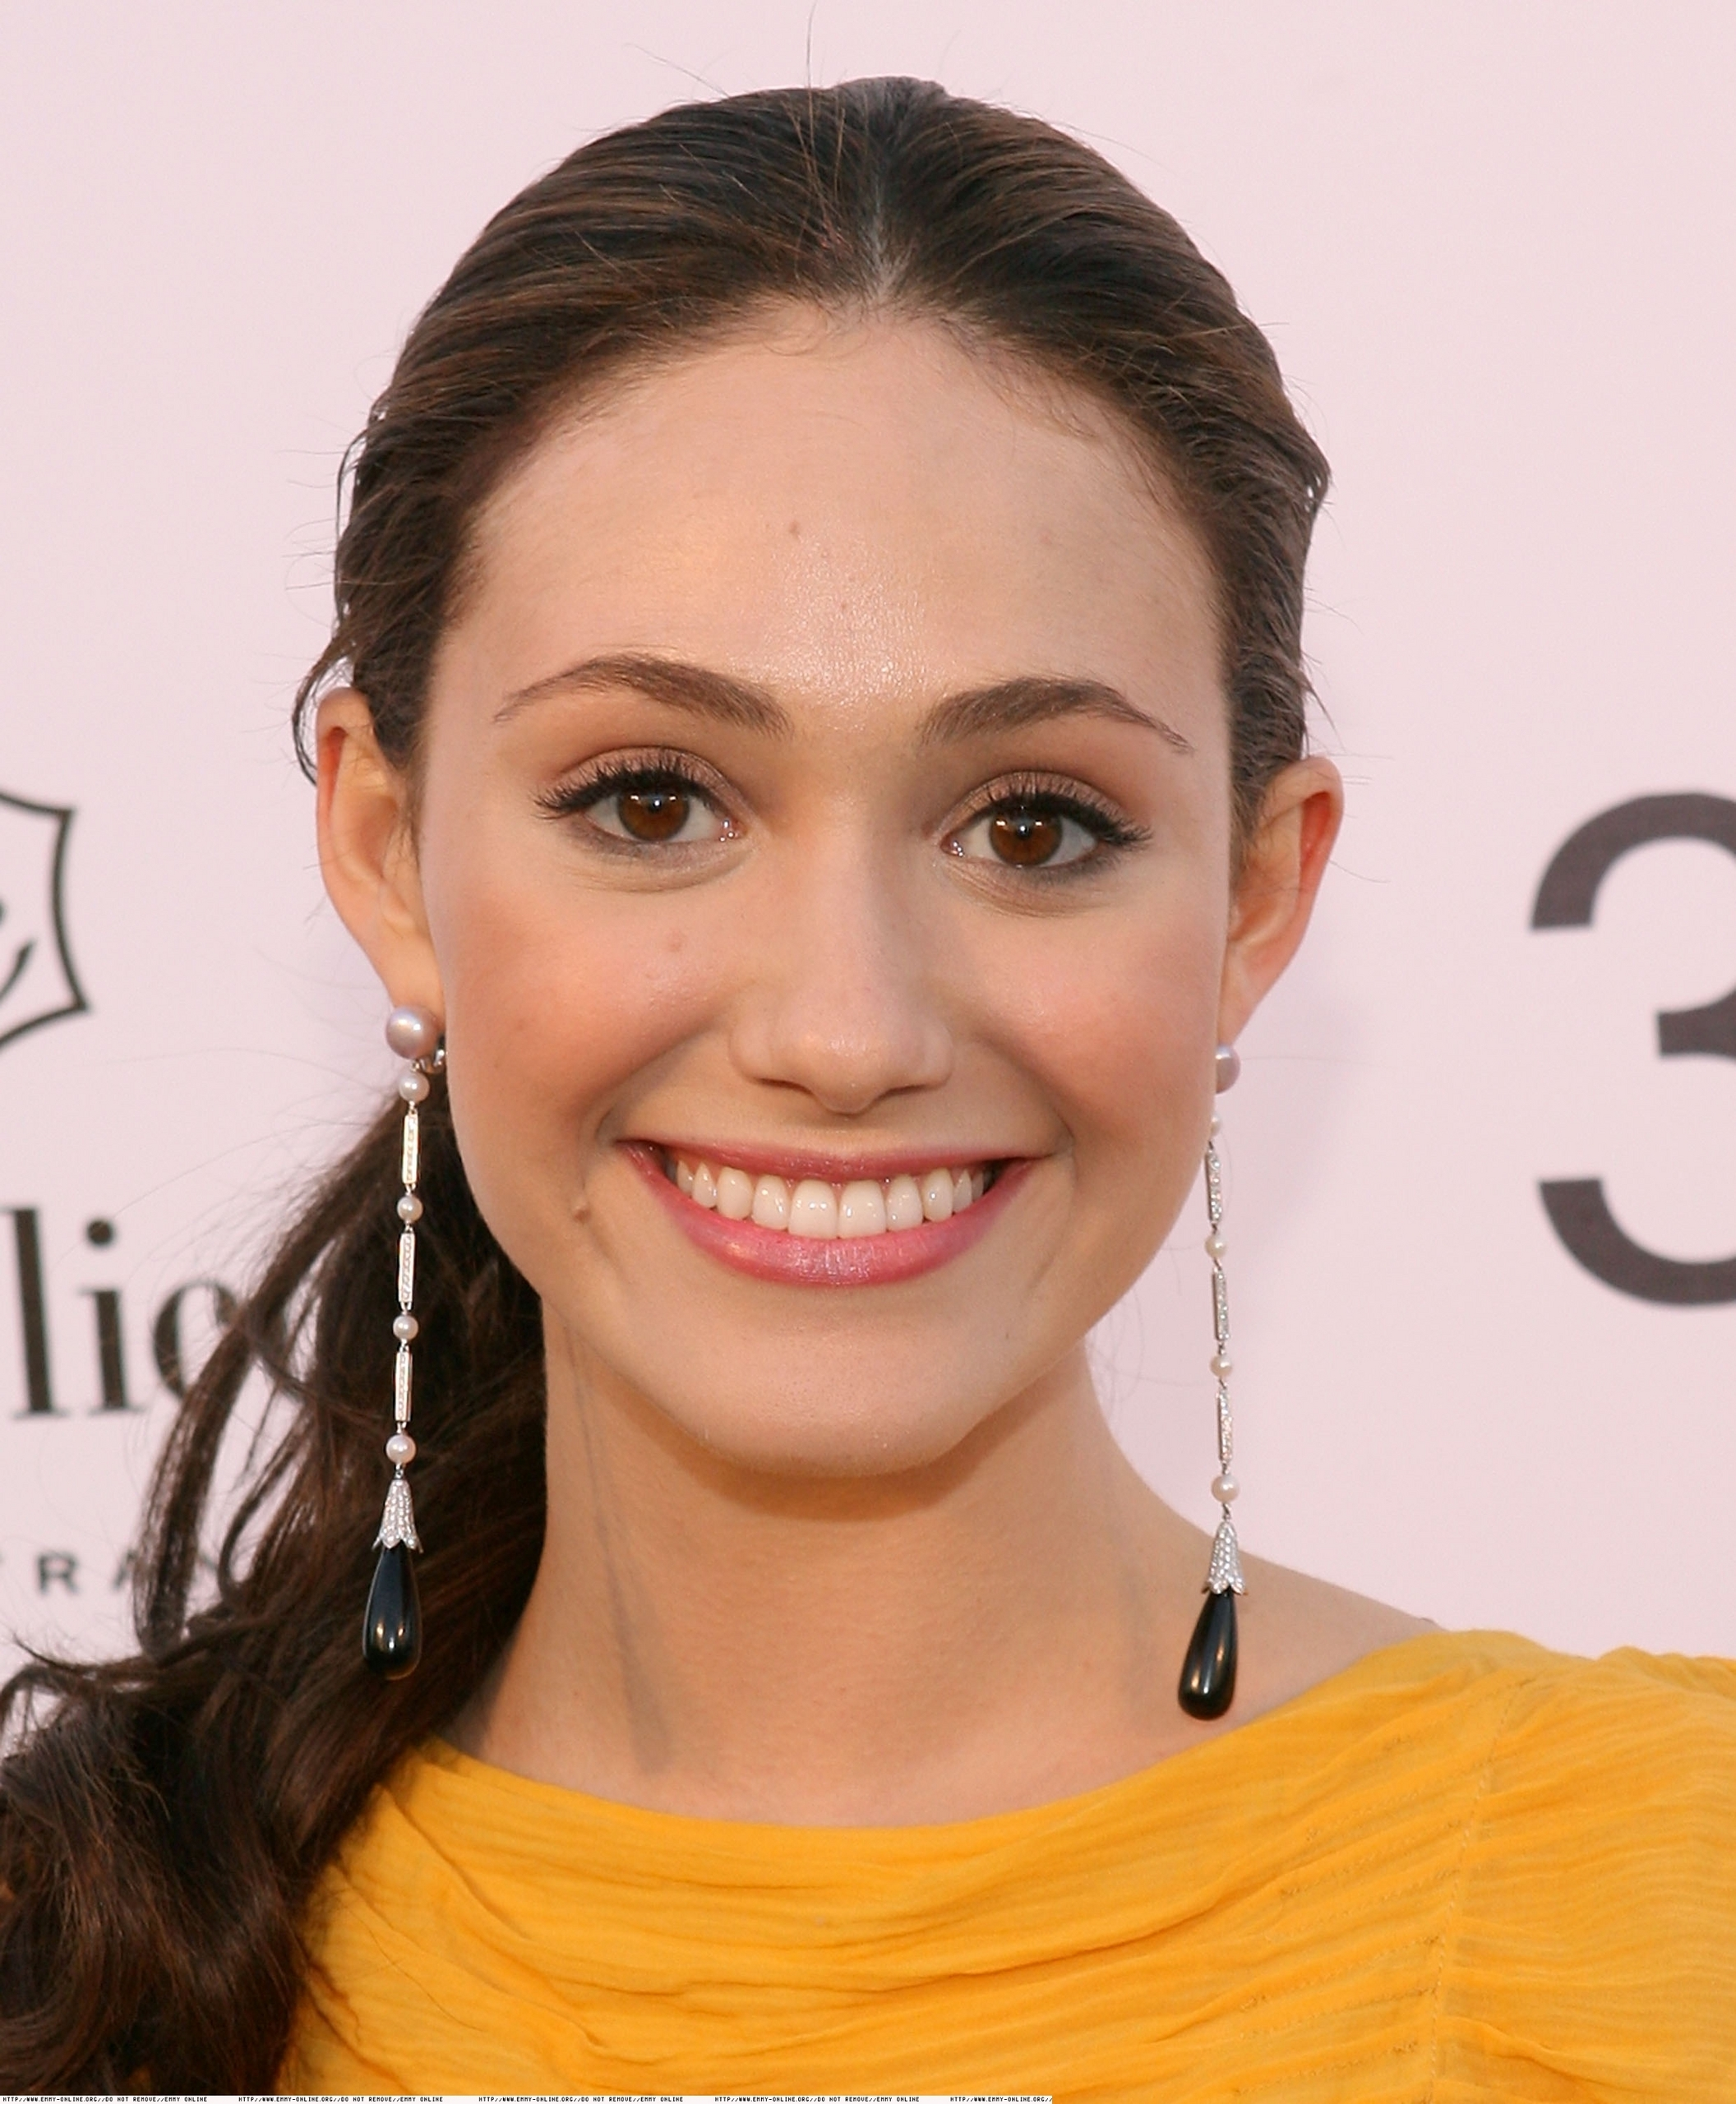 Emmy Rossum - Wallpaper